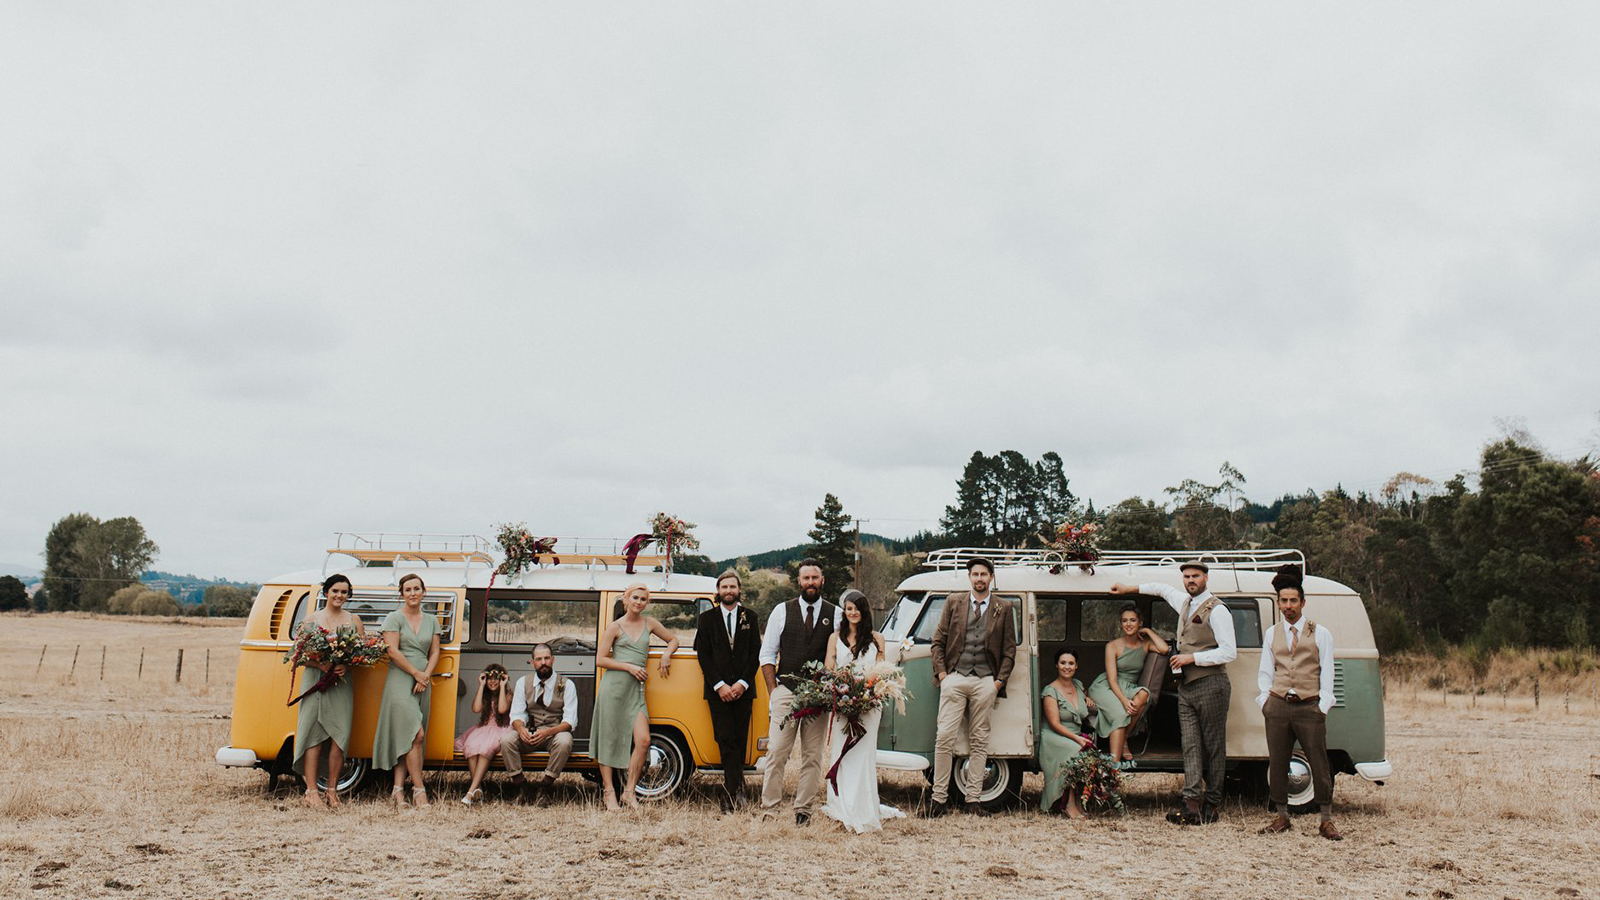 Emliy Rae Wedding Bridal Pary In Front Of Vintage Bus 1600pxW 16x9.png